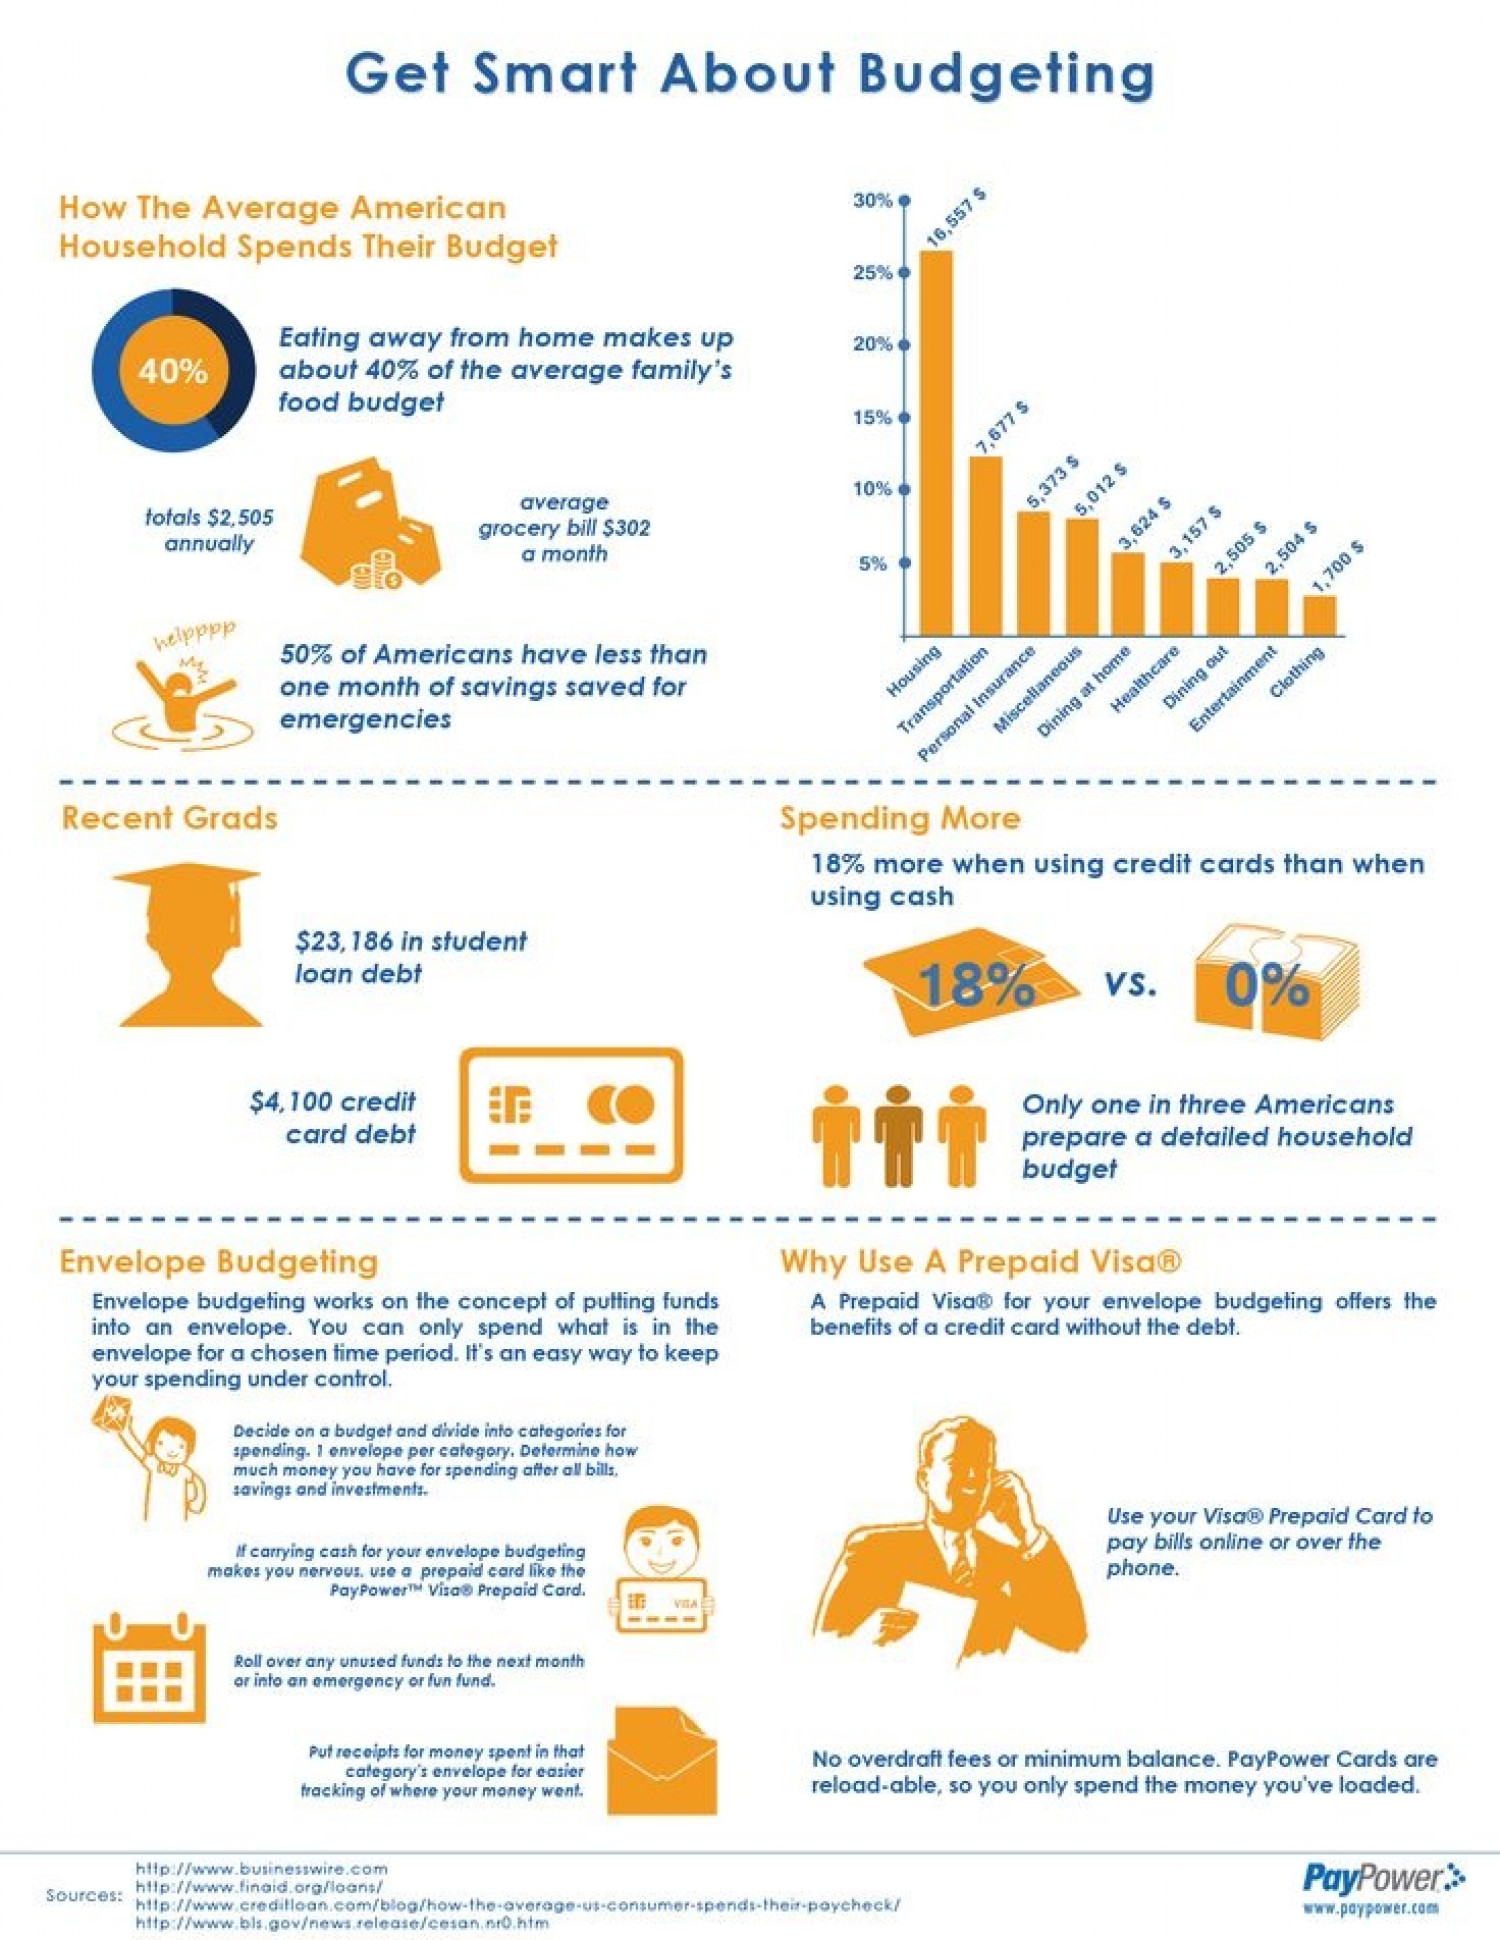 Get Smart About Budgeting Infographic